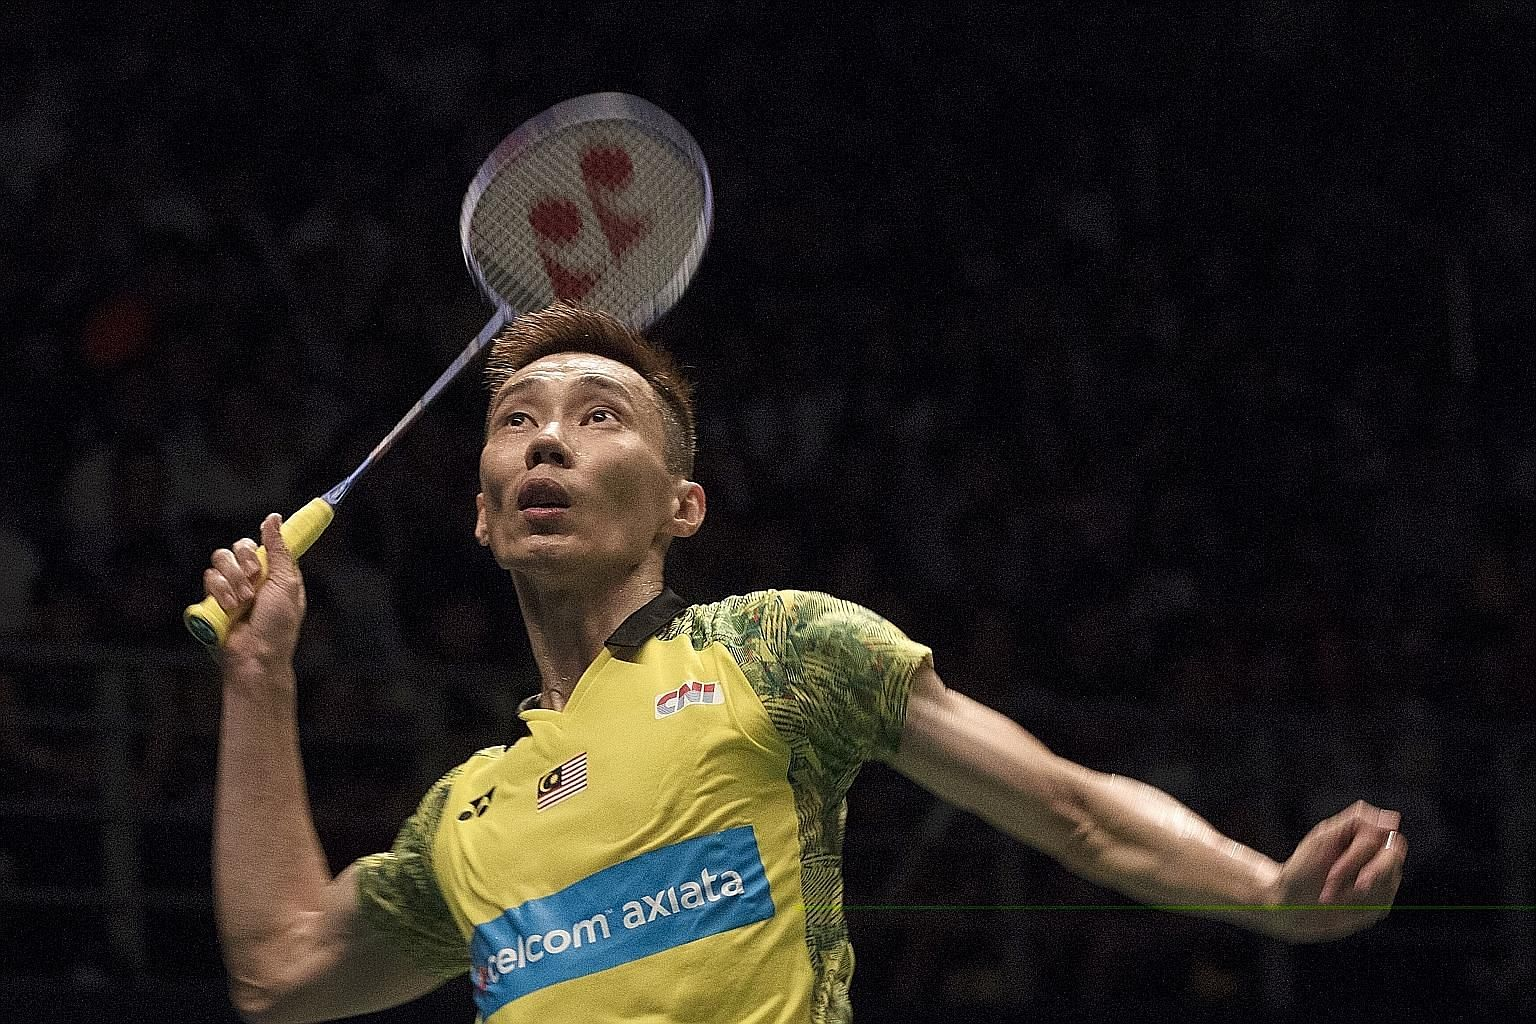 Lee Chong Wei is unlikely to defend his Malaysia Open title in early April as he has not recovered physically from his nose-cancer treatment. He will probably target the Sudirman Cup in May for his comeback.